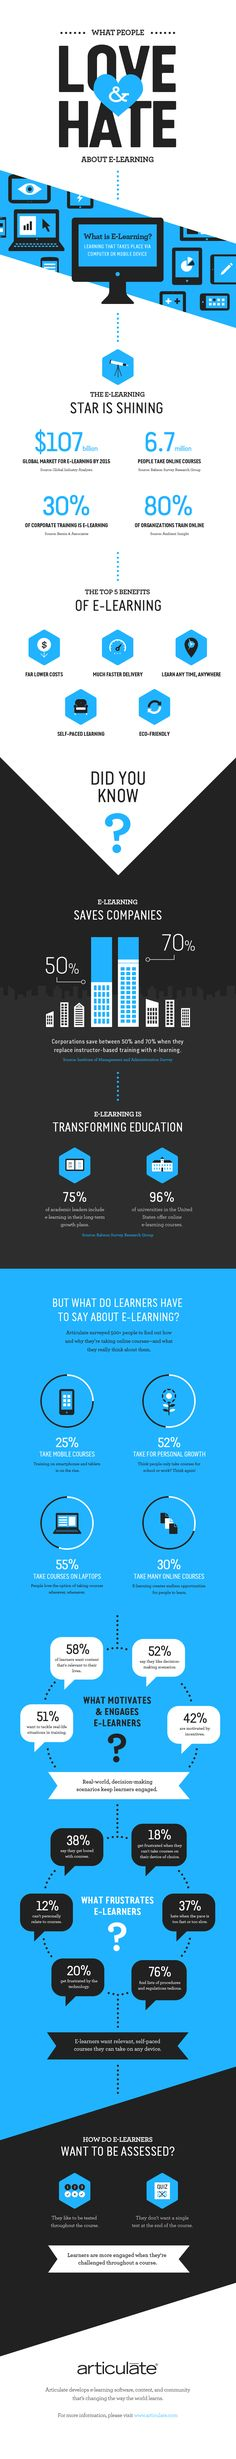 What Do You Love & Hate About E-Learning?